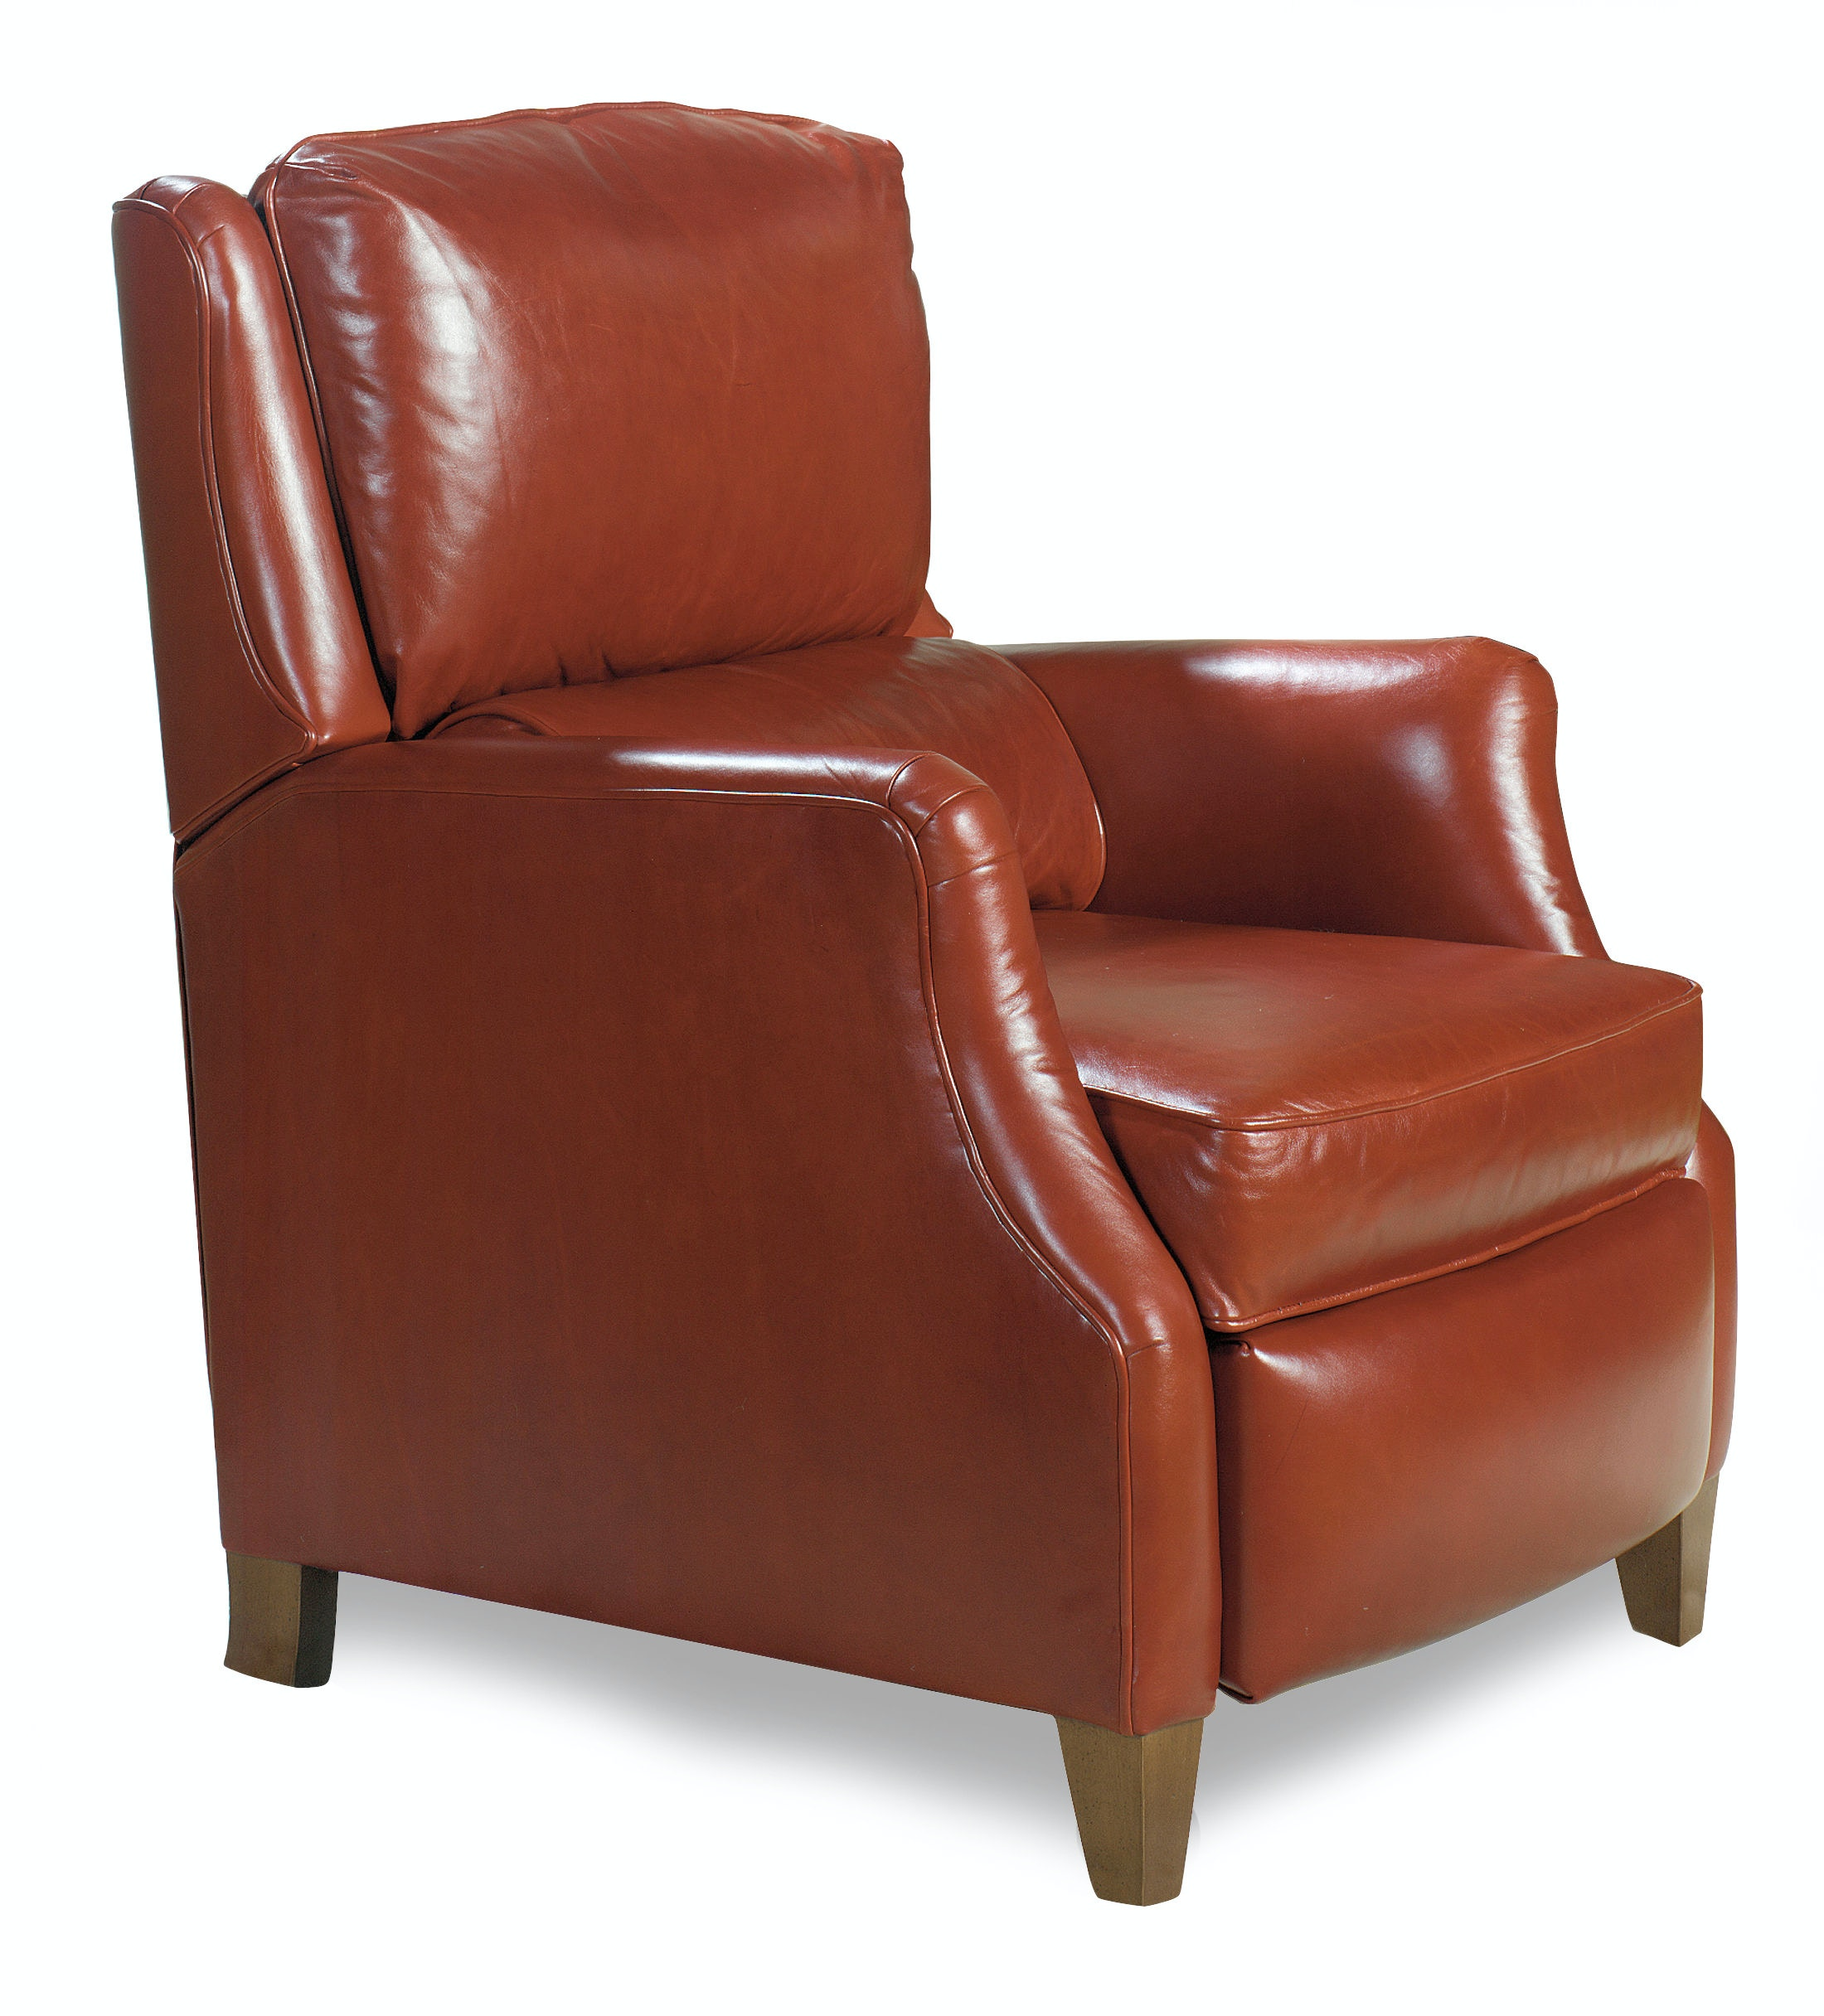 Bradington Young Schaumburg High Leg Reclining Lounger 4009